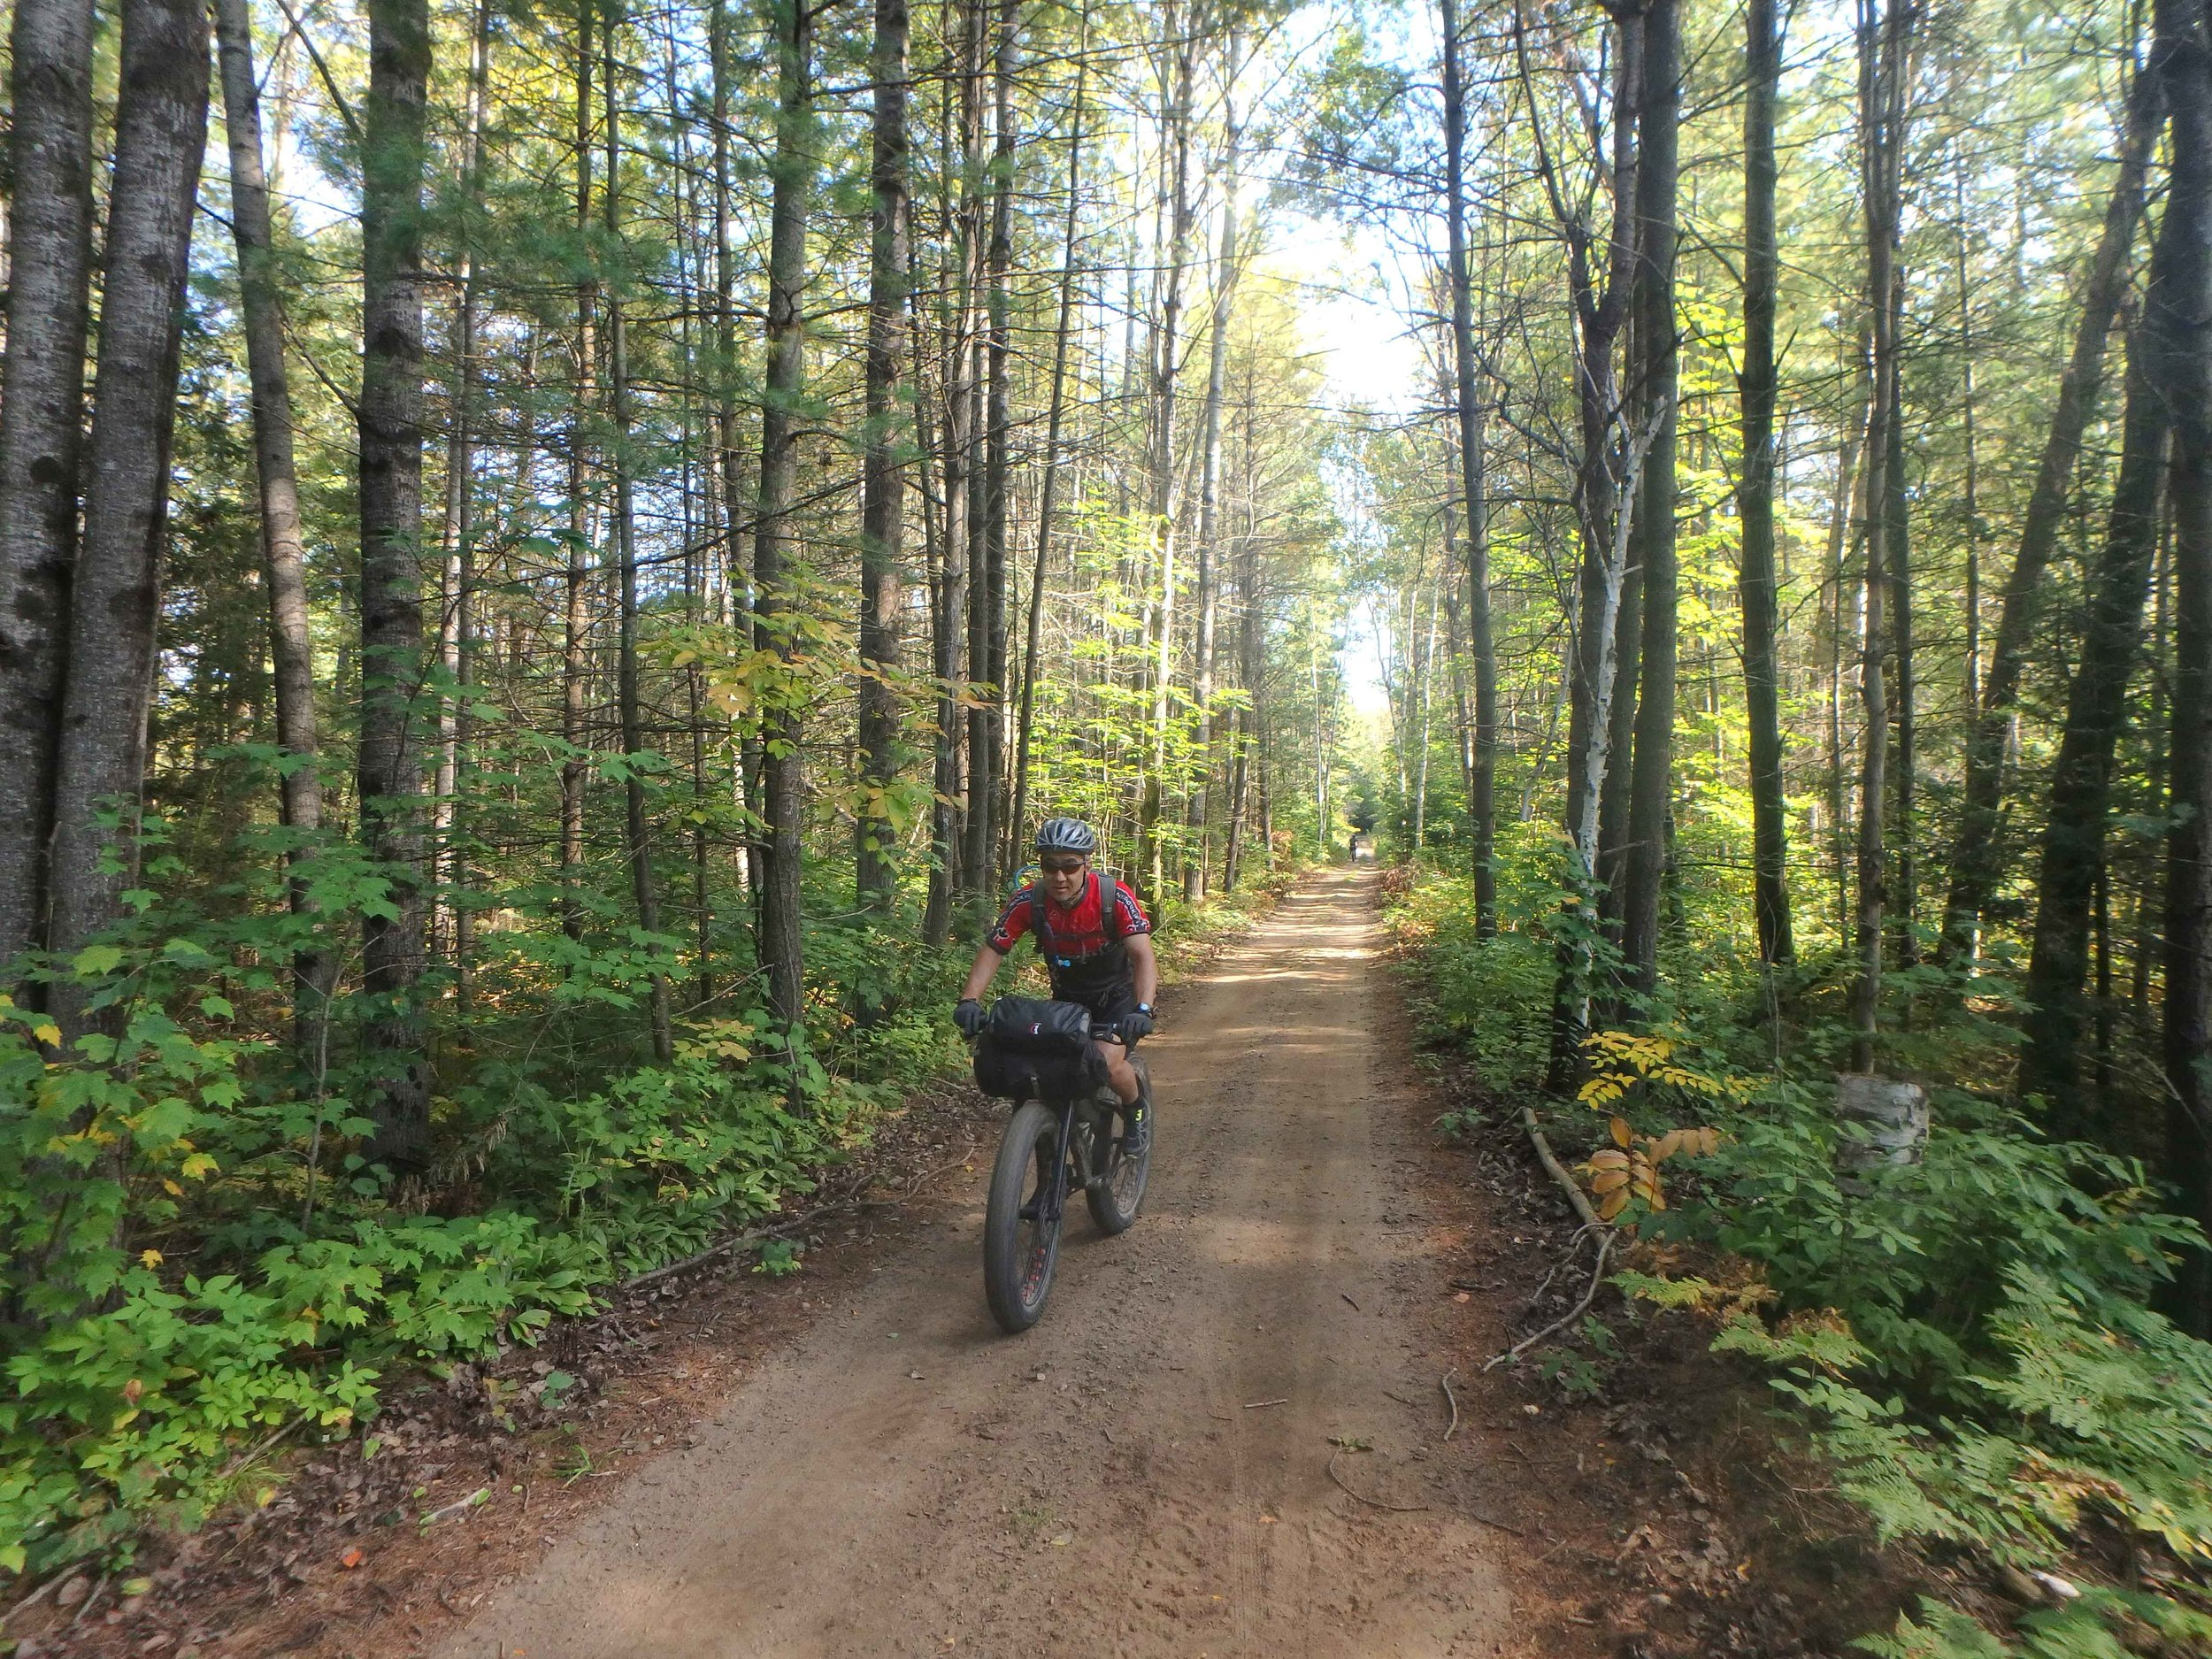 Dirt road bliss on the approach to Haliburton